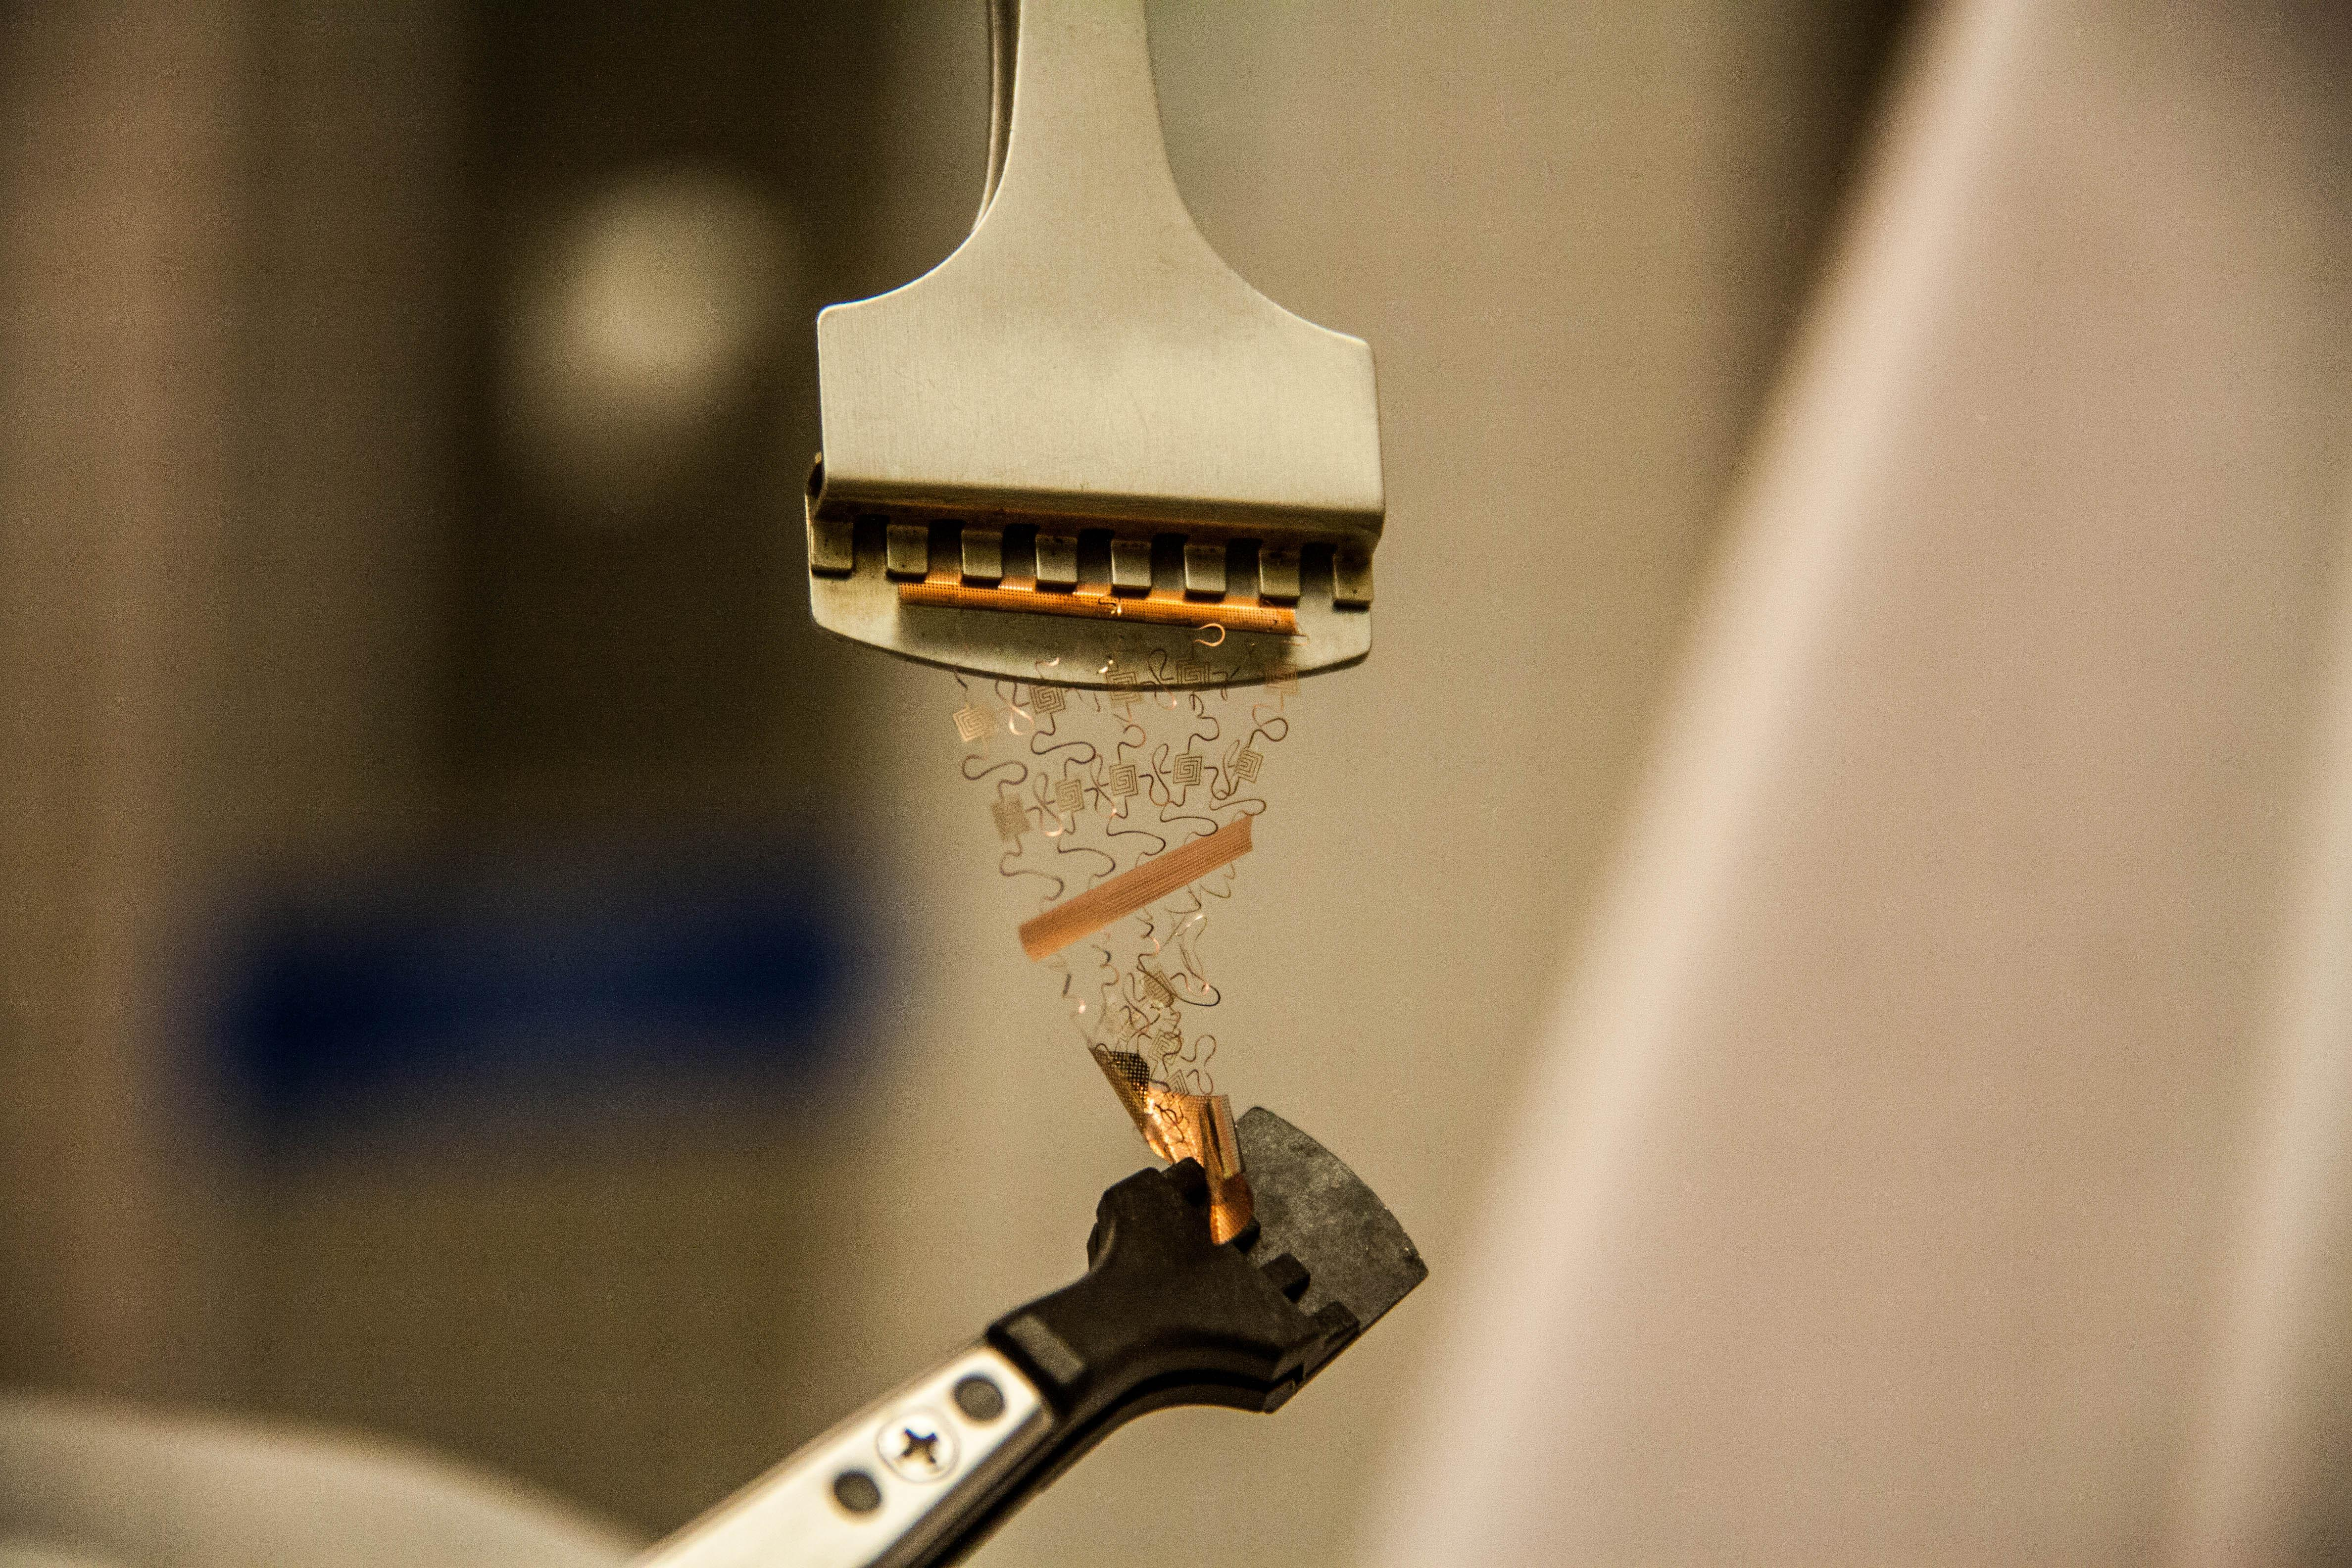 KAUST CEMSE EE MMH LABS FABLAB Stretchable electronic